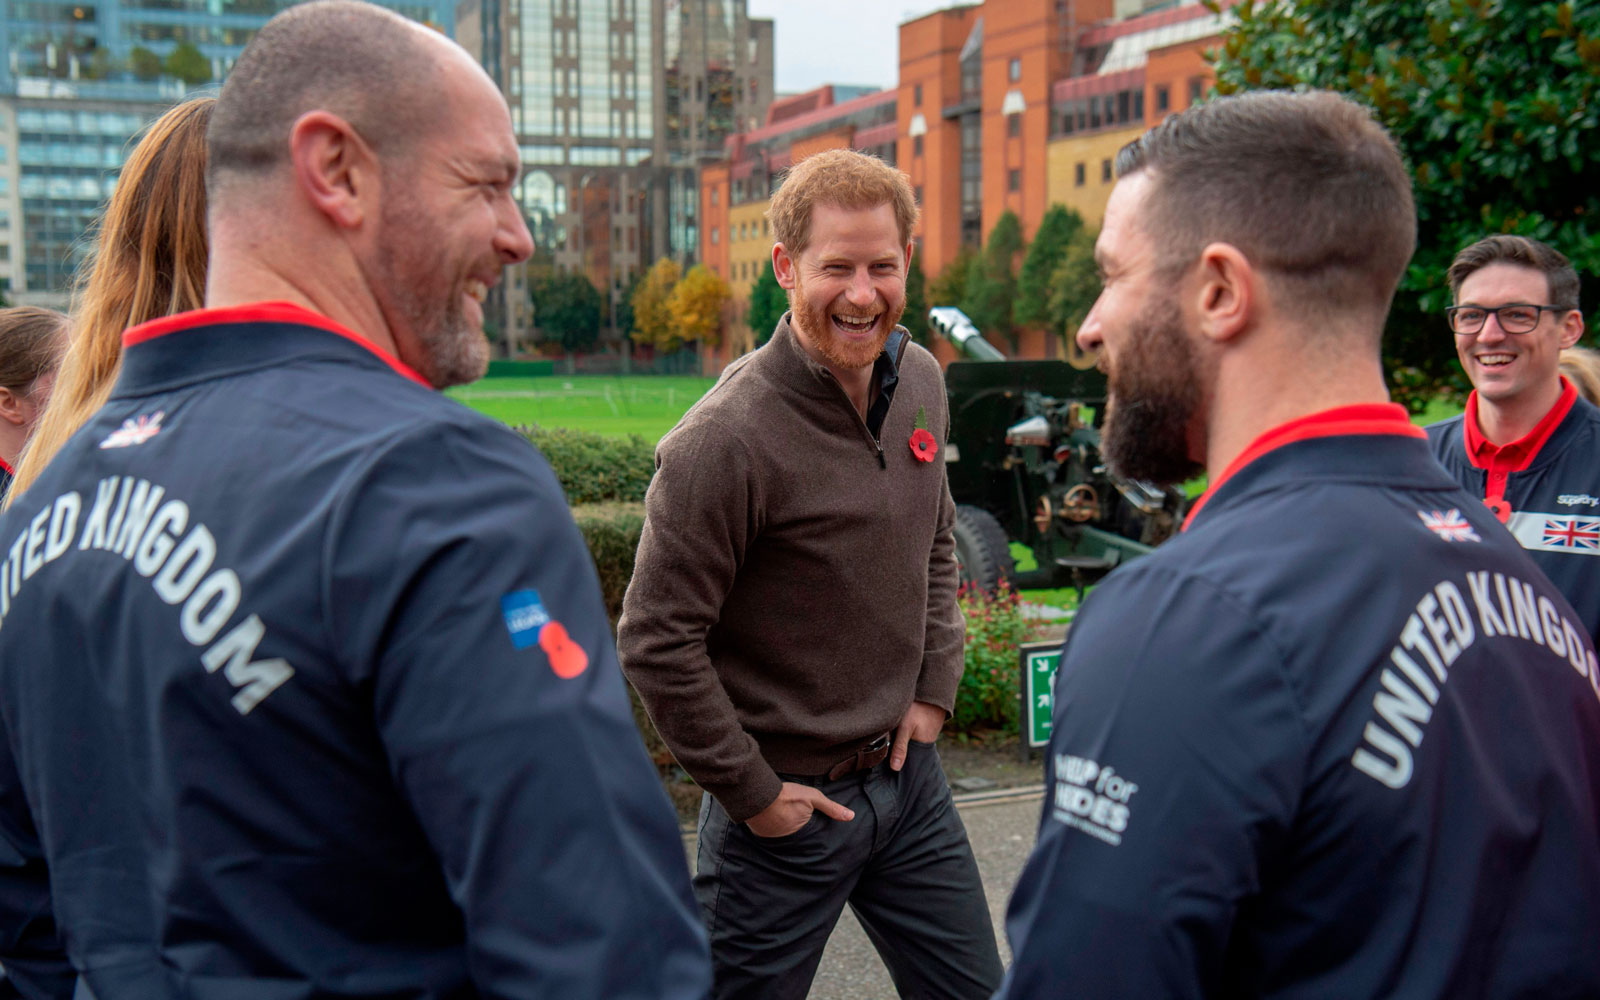 Prince Harry attends the launch of Team UK, selected for the 'Invictus Games The Hague 2020' at Honourable Artillery Company in east London on October 29, 2019.